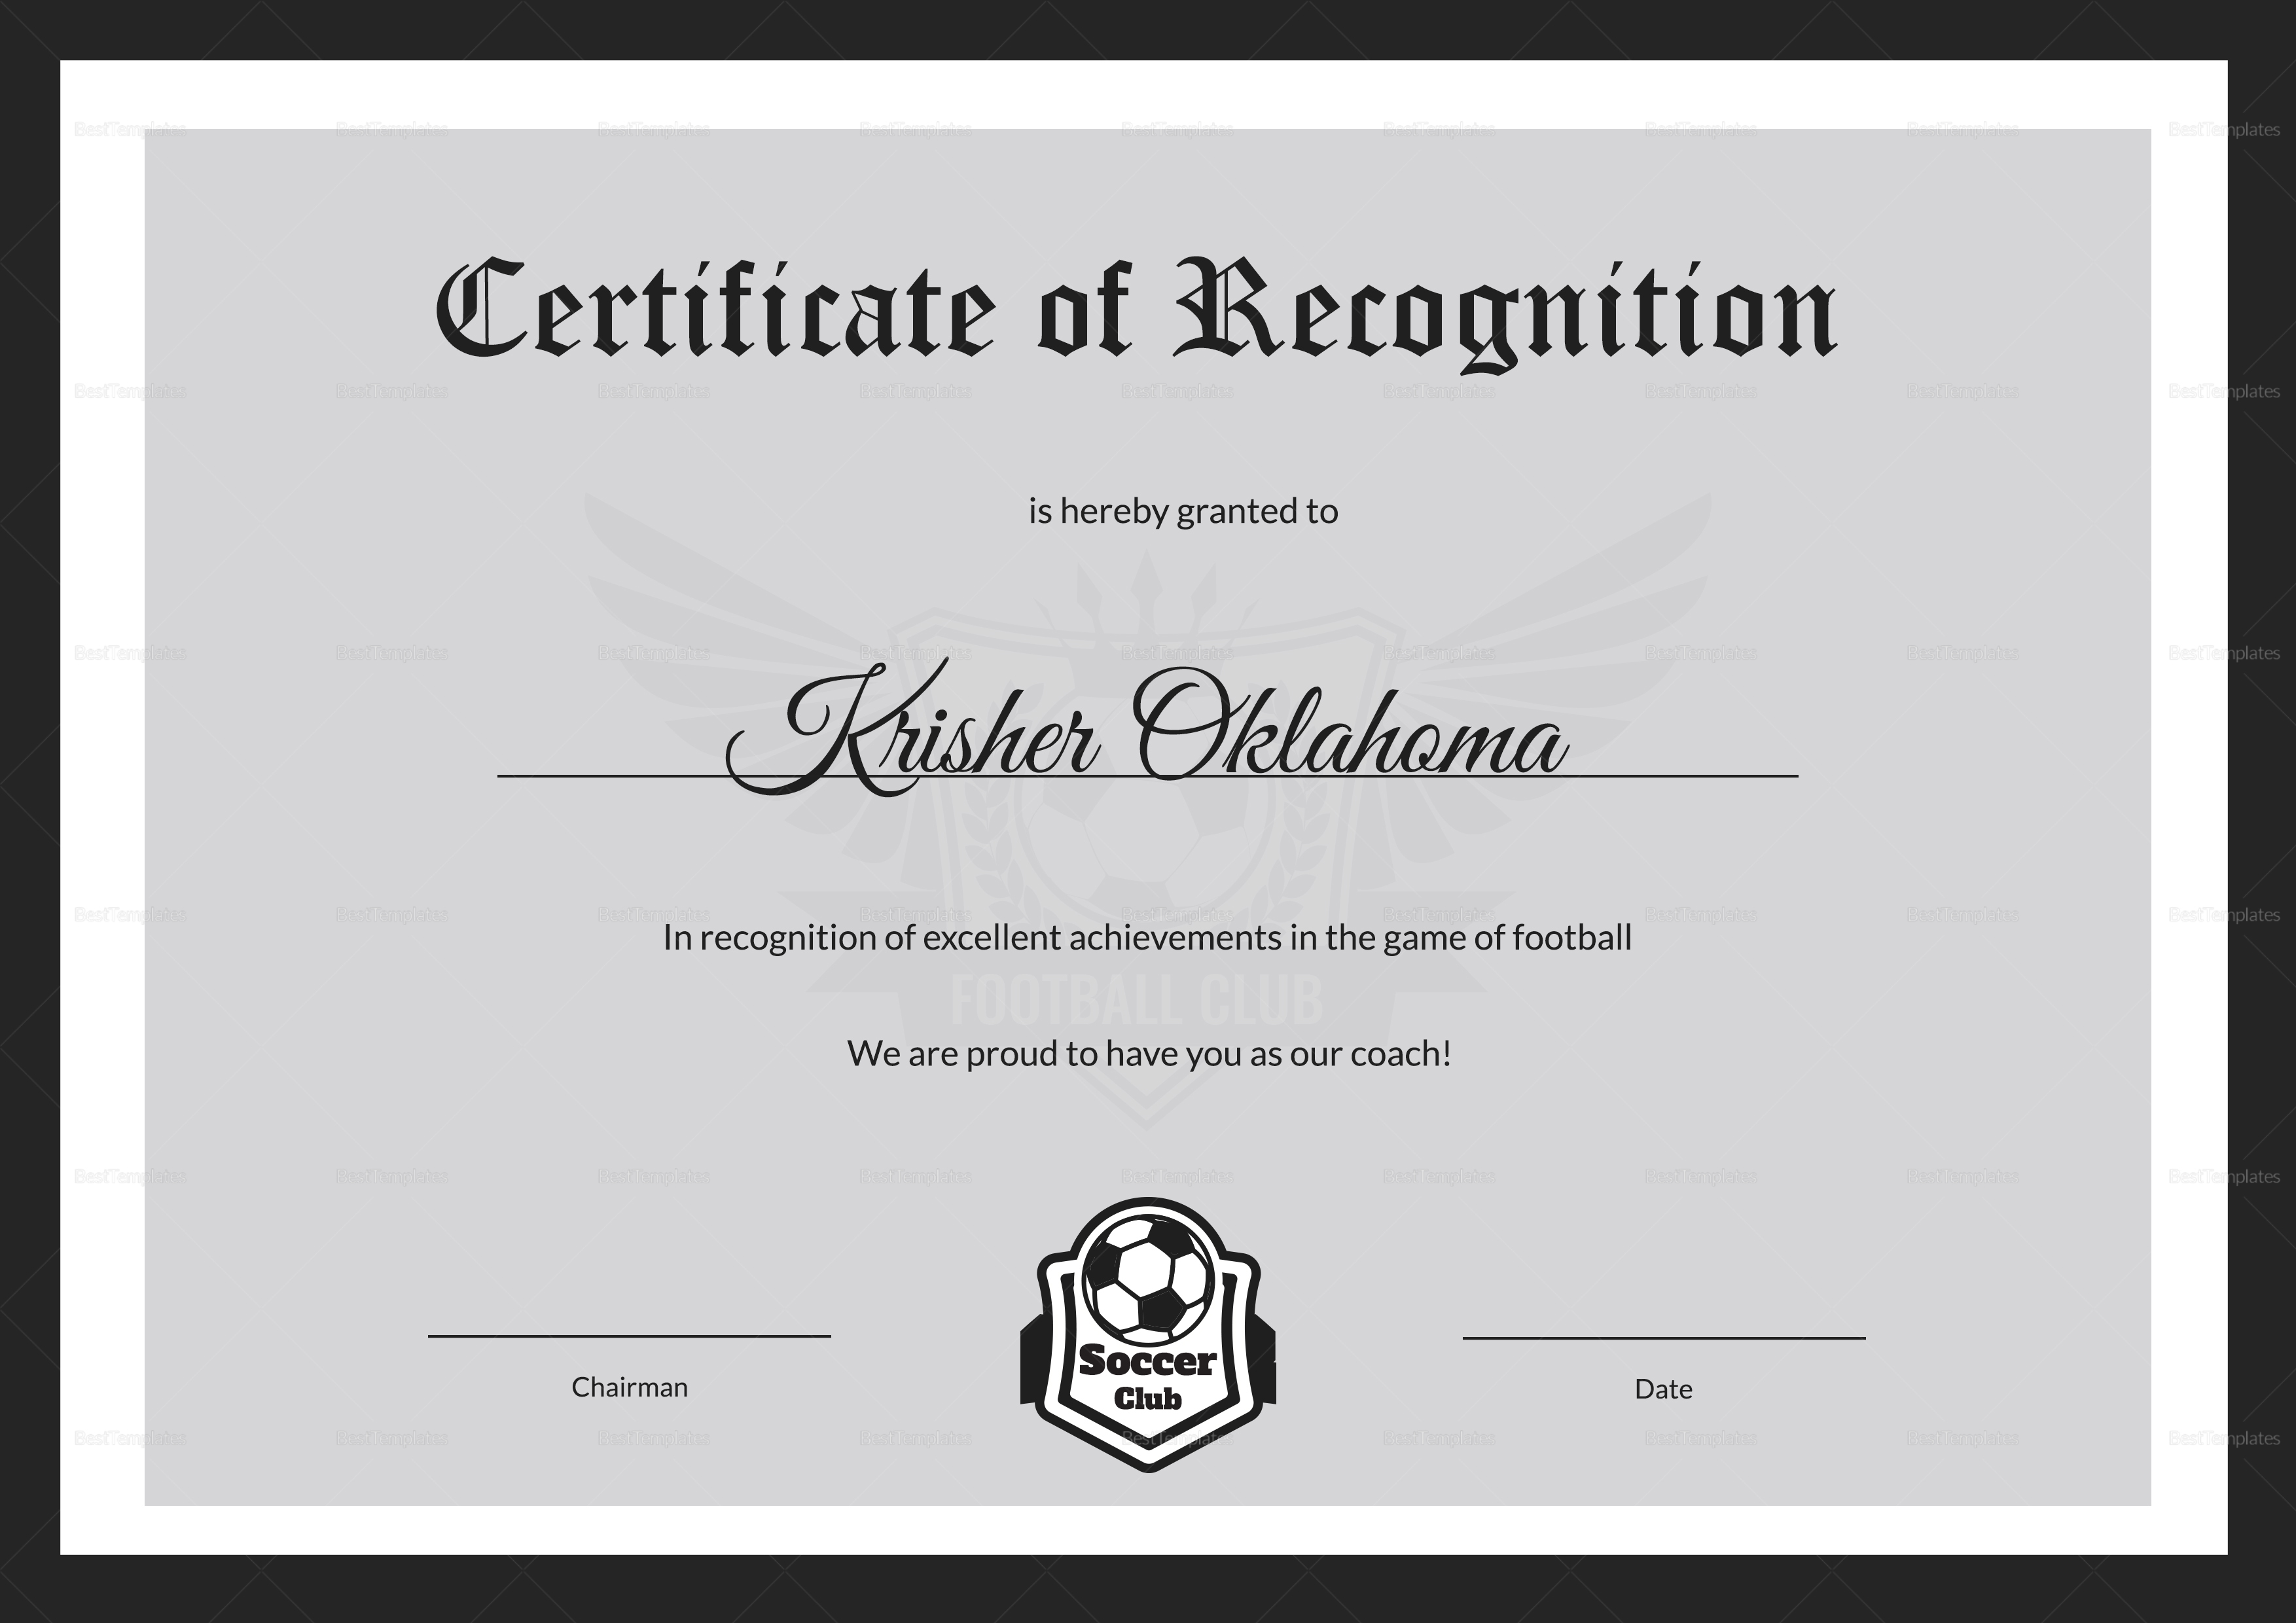 football certificates templates uk image collections